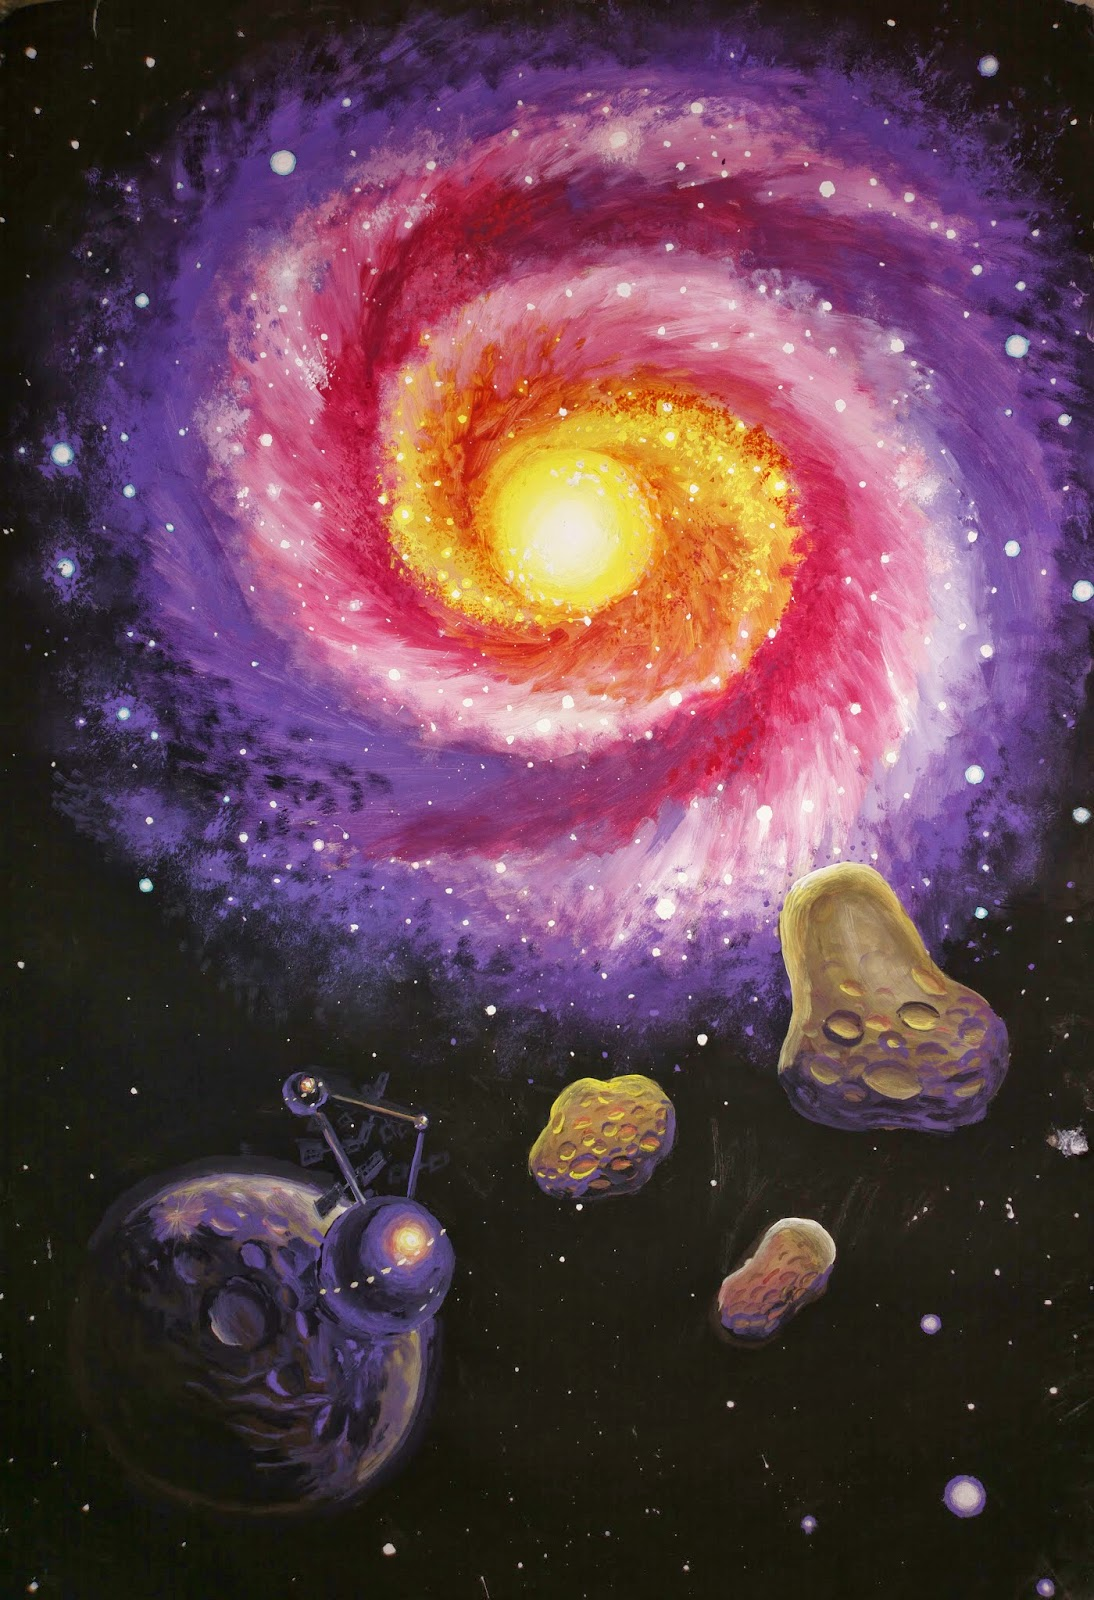 Space Galaxies and Planets Paintings high quality wallpaper